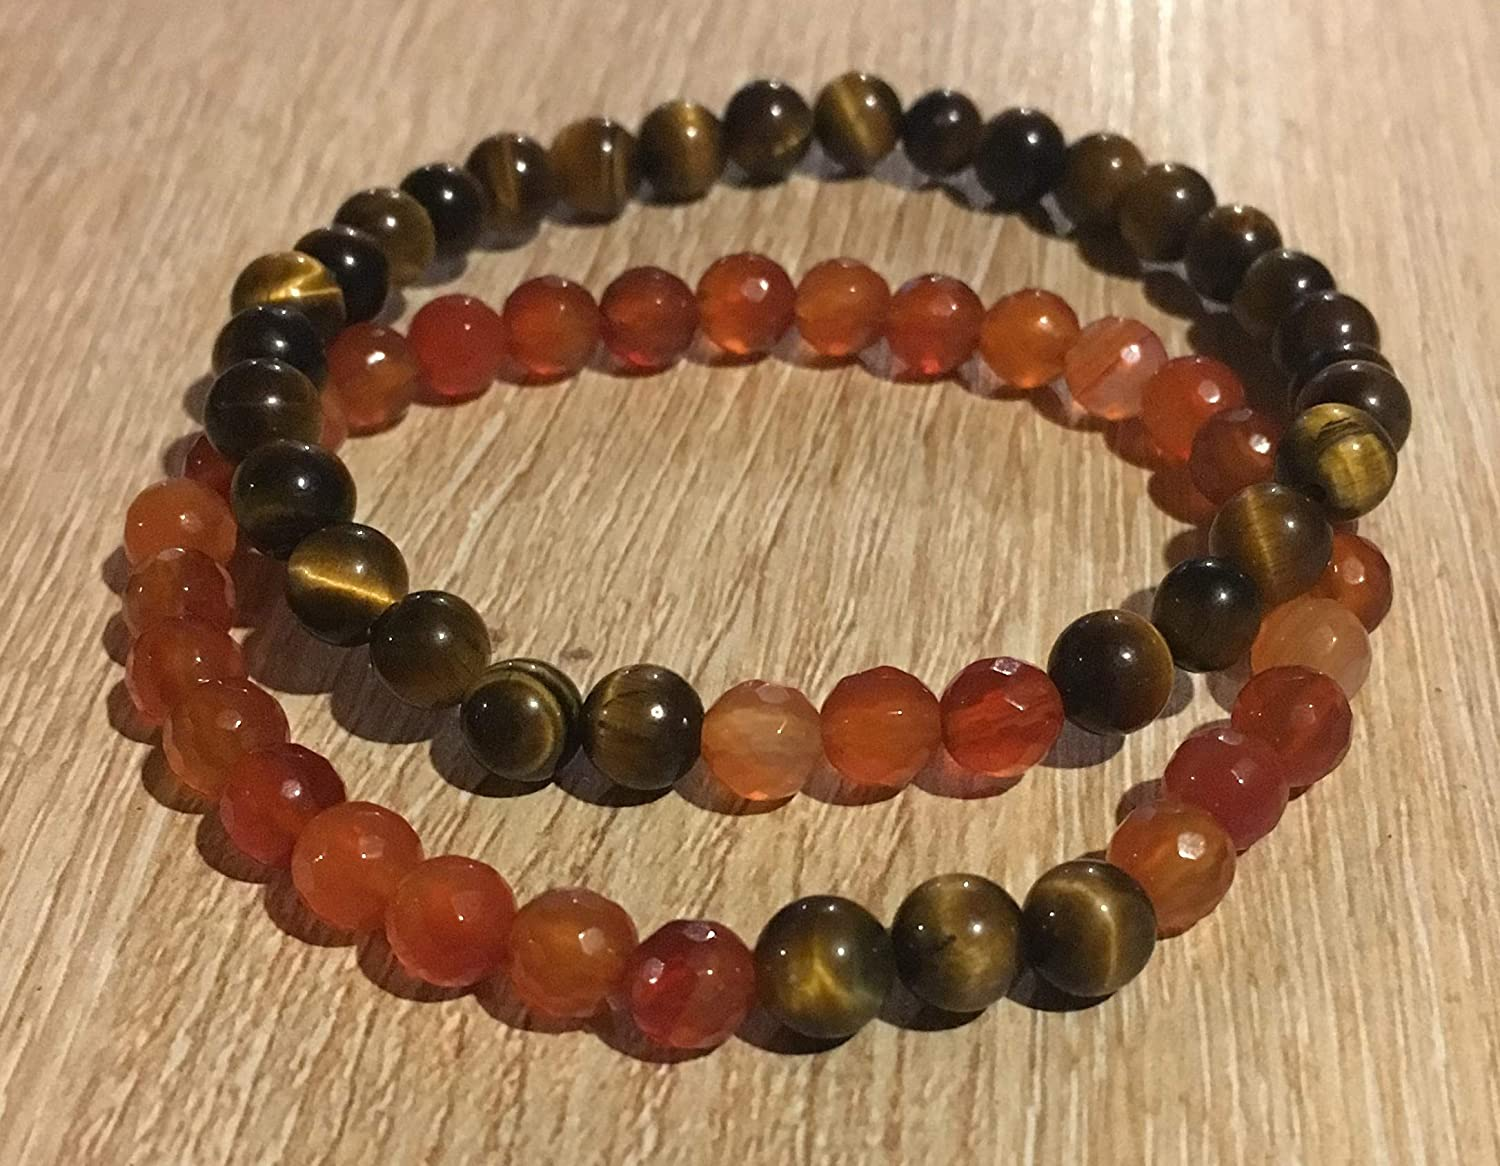 Bracelet duo COUPLE lovers or friends protection distance healing carnelian and tiger eye beads natural stone semi-precious